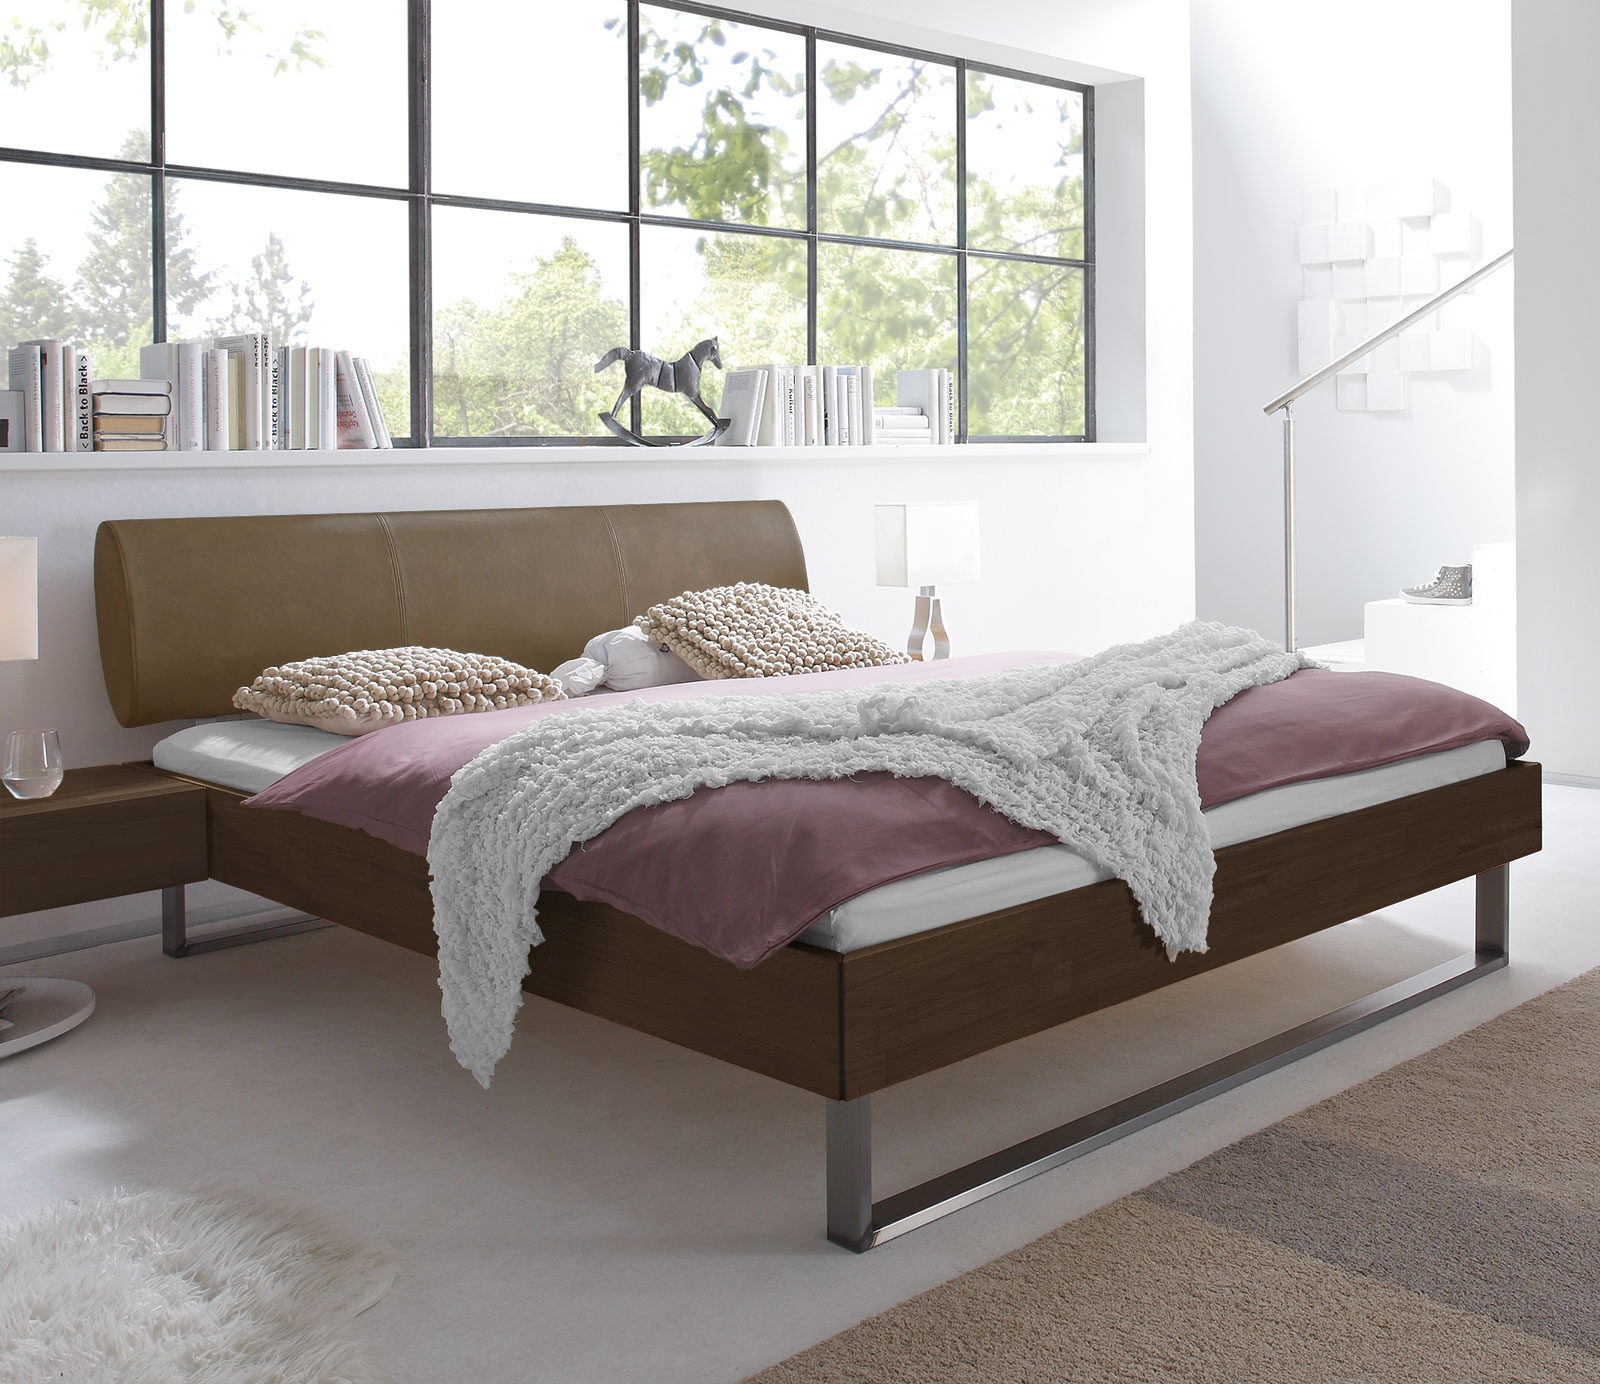 bett aus buche 160x200 mit kunstleder kopfteil tema. Black Bedroom Furniture Sets. Home Design Ideas